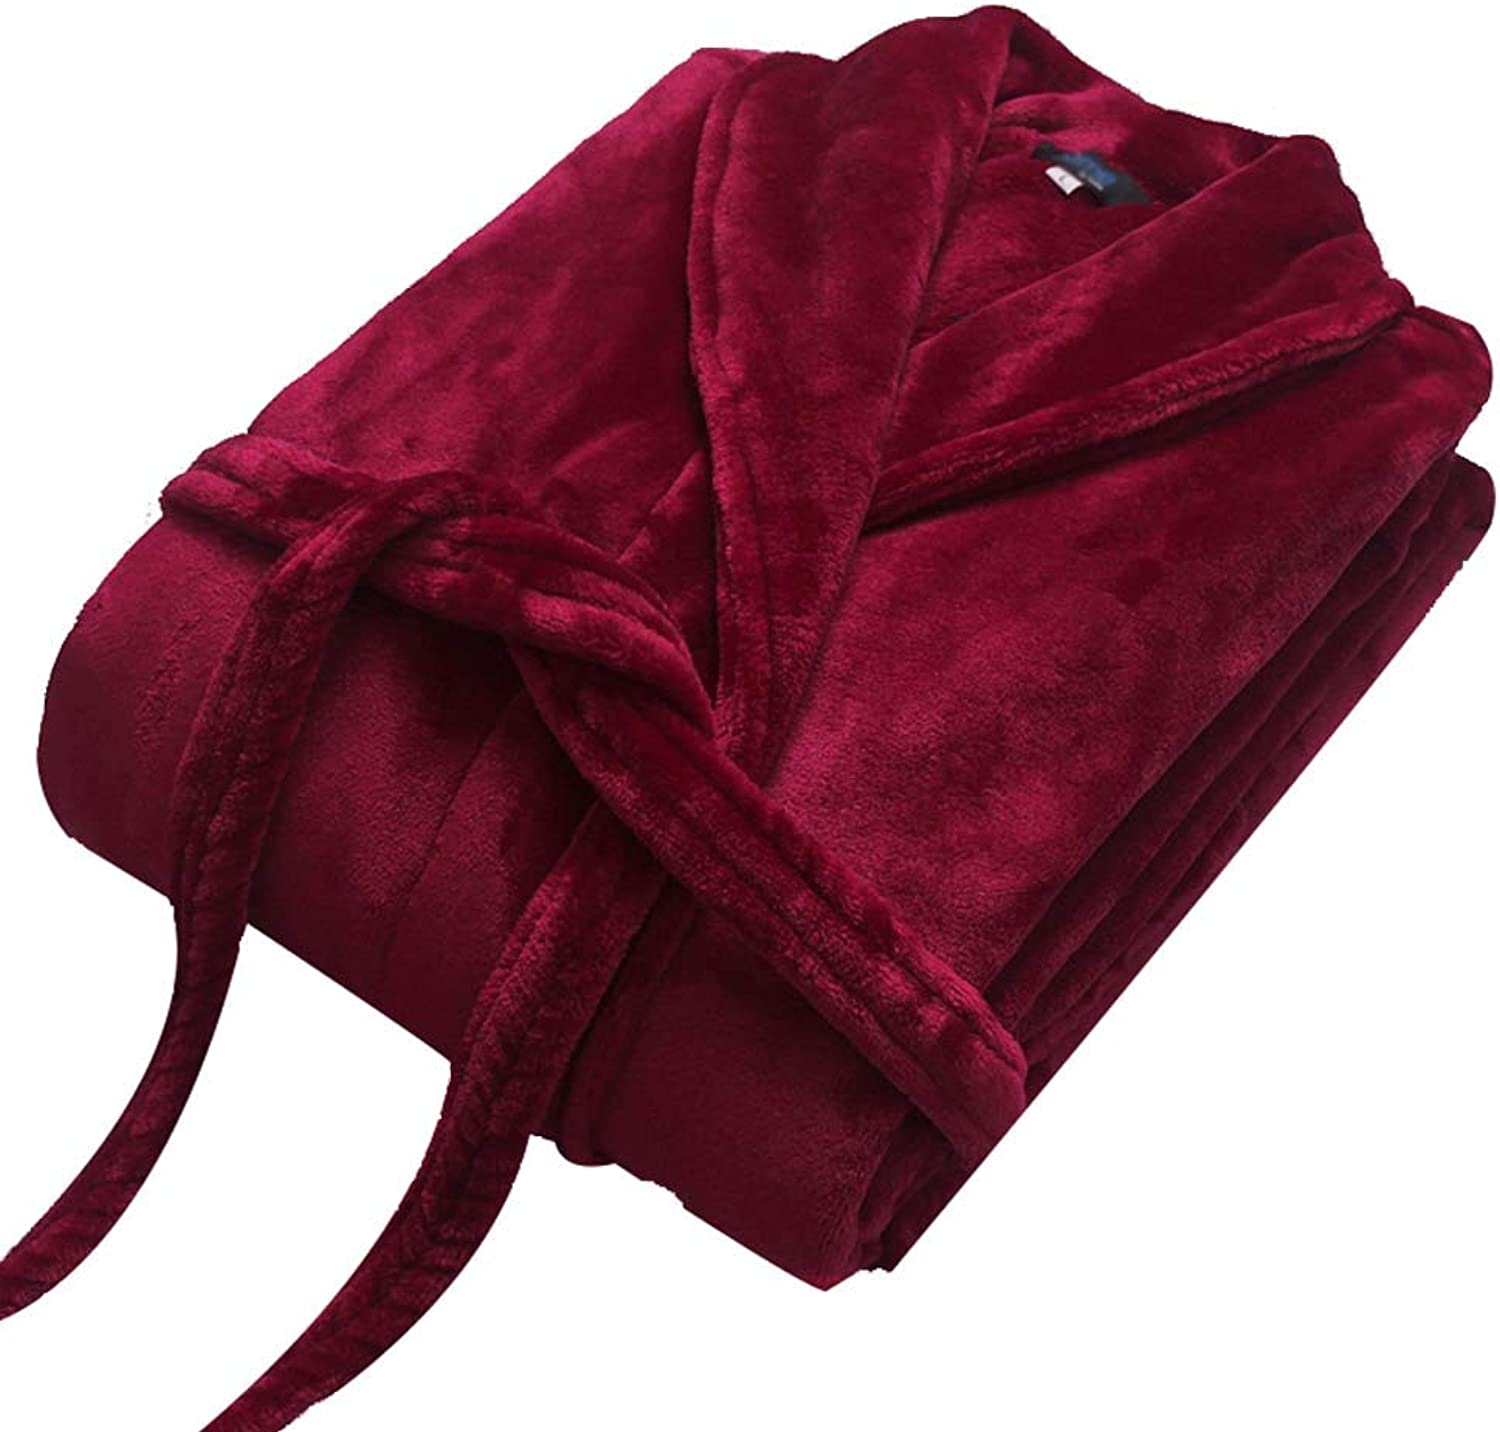 GJFeng Couple Bathrobes Autumn and Winter Flannel Fashion Multicolor Thickening Large Lapel Long Warm Pajamas (color   Deep red, Size   XL)